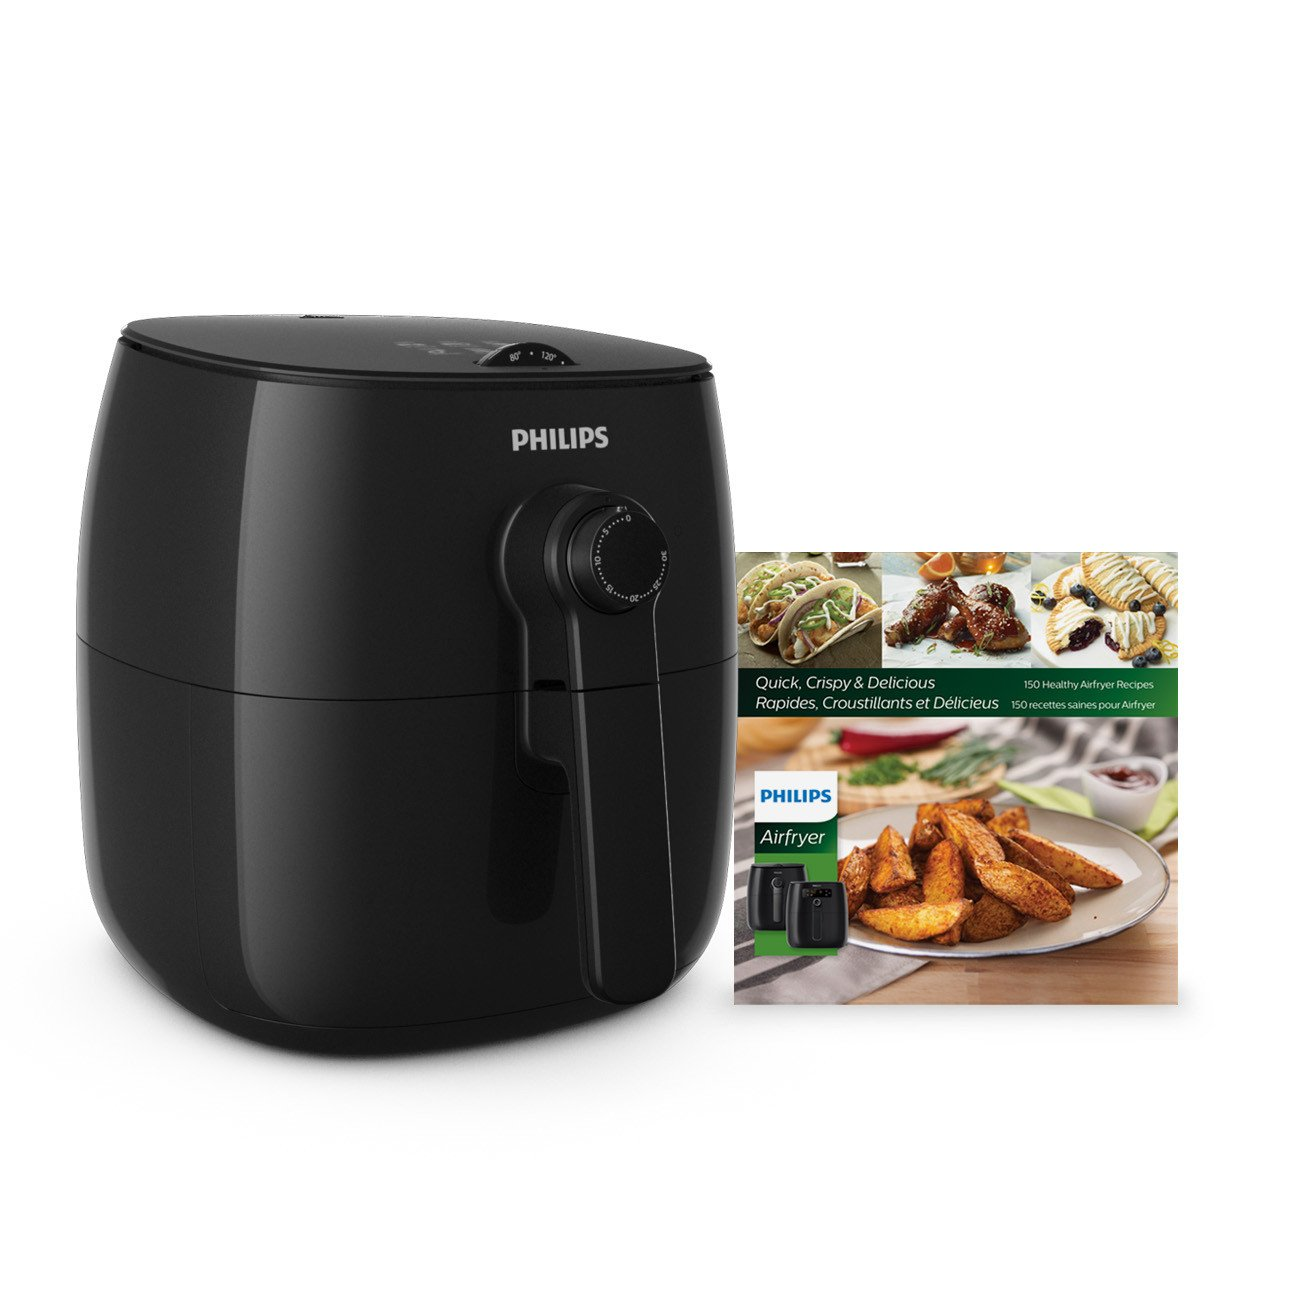 Philips Kitchen Appliances HD9621 99 Viva Philips TurboStar Airfryer with Cookbook, 5, Black